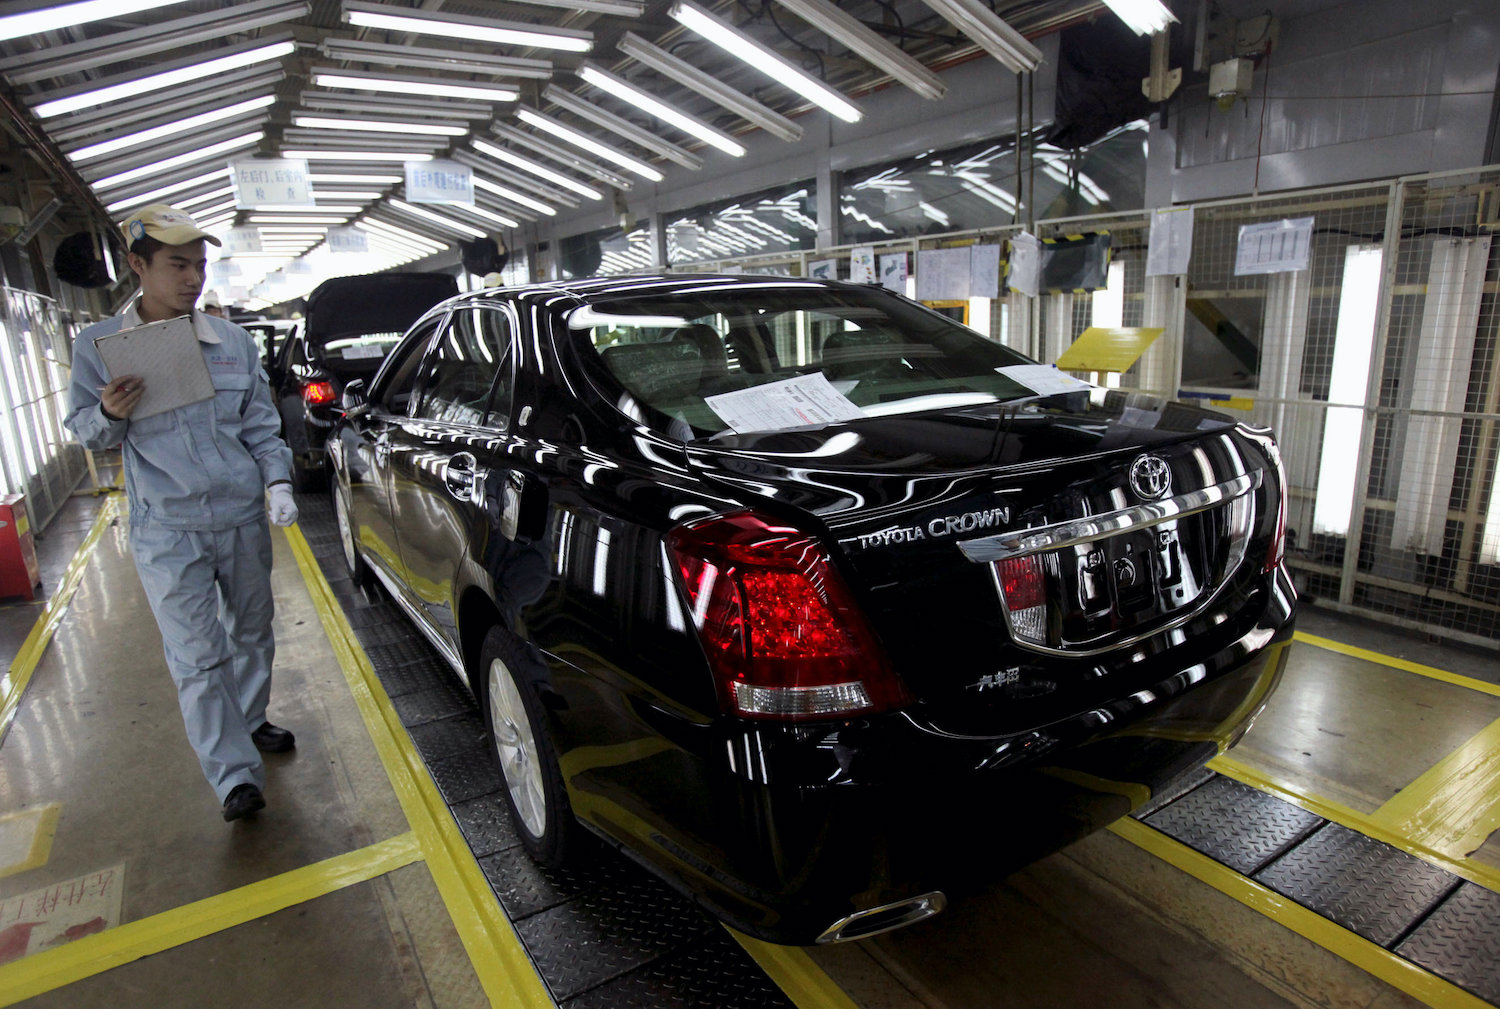 An employee inspects a new Toyota Crown at the Japanese carmaker's plant in Tianjin, China. (Reuters Photo)